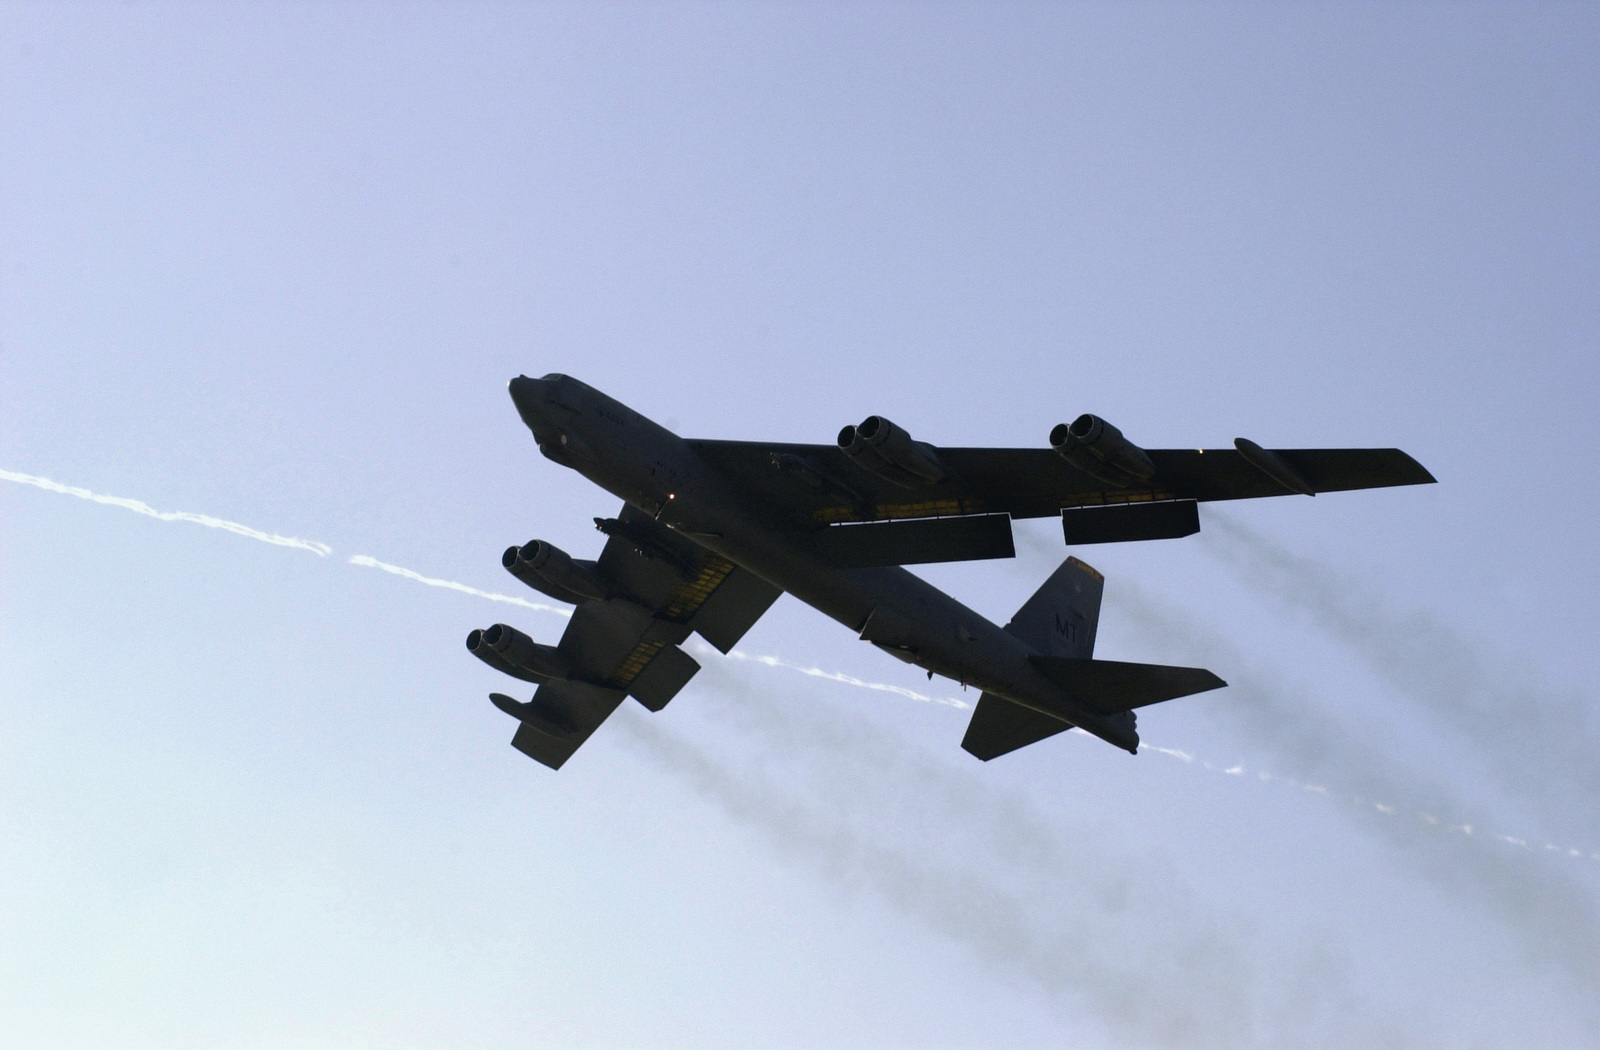 A US Air Force (USAF) B-52H Stratofortress aircraft assigned to the 457th Air Expeditionary Group (AEG), 23rd Expeditionary Bomb Squadron (EBS) takes off at Royal Air Force (RAF) Fairford, England